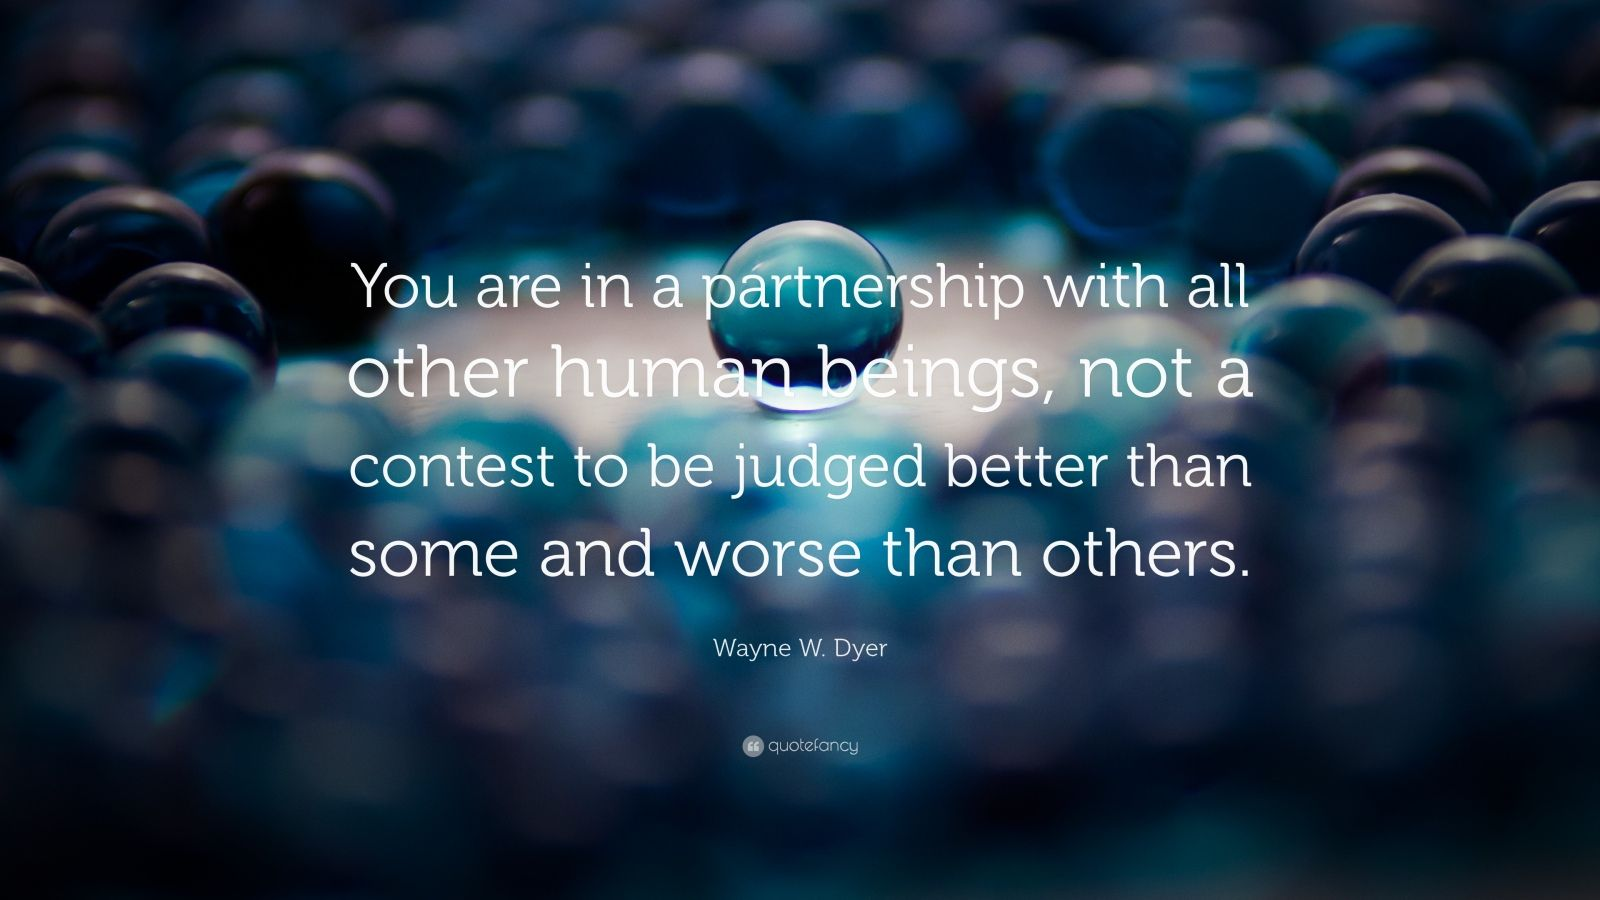 """Wayne W. Dyer Quote: """"You are in a partnership with all other human beings, not a contest to be judged better than some and worse than others."""""""